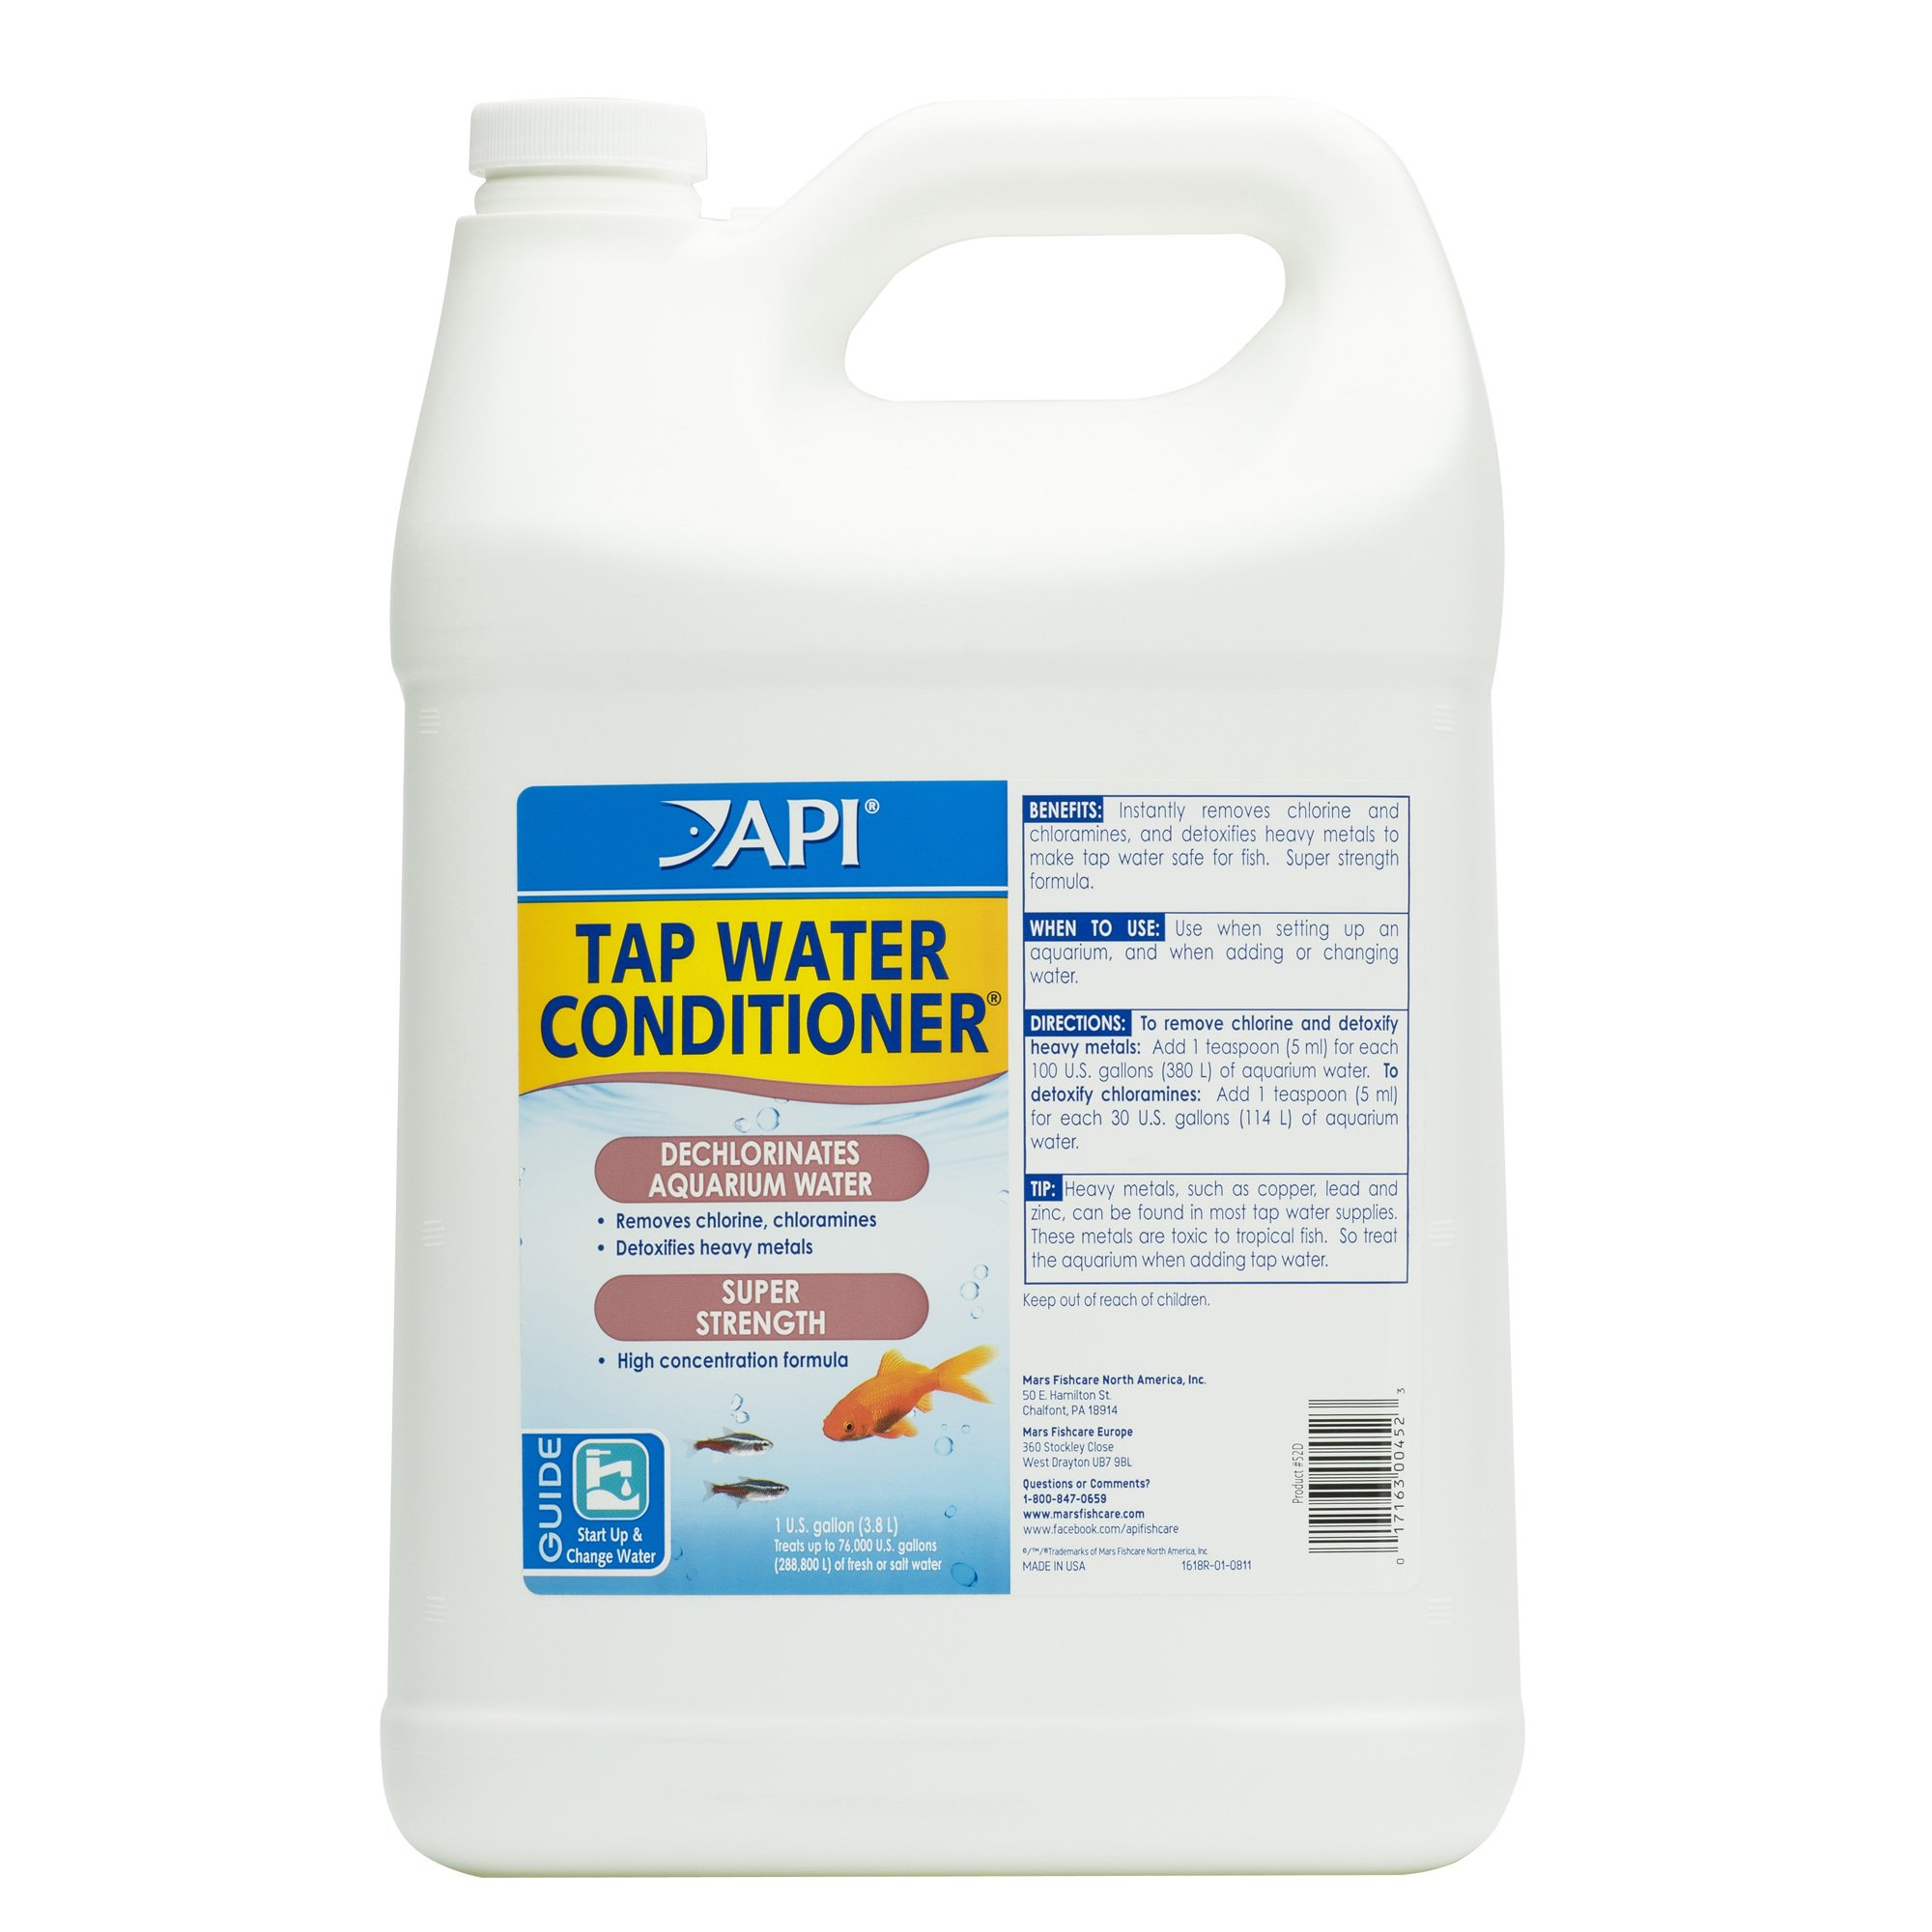 API Tap Water Conditioner Aquarium Water Conditioner 1 Gallon Bottle by API